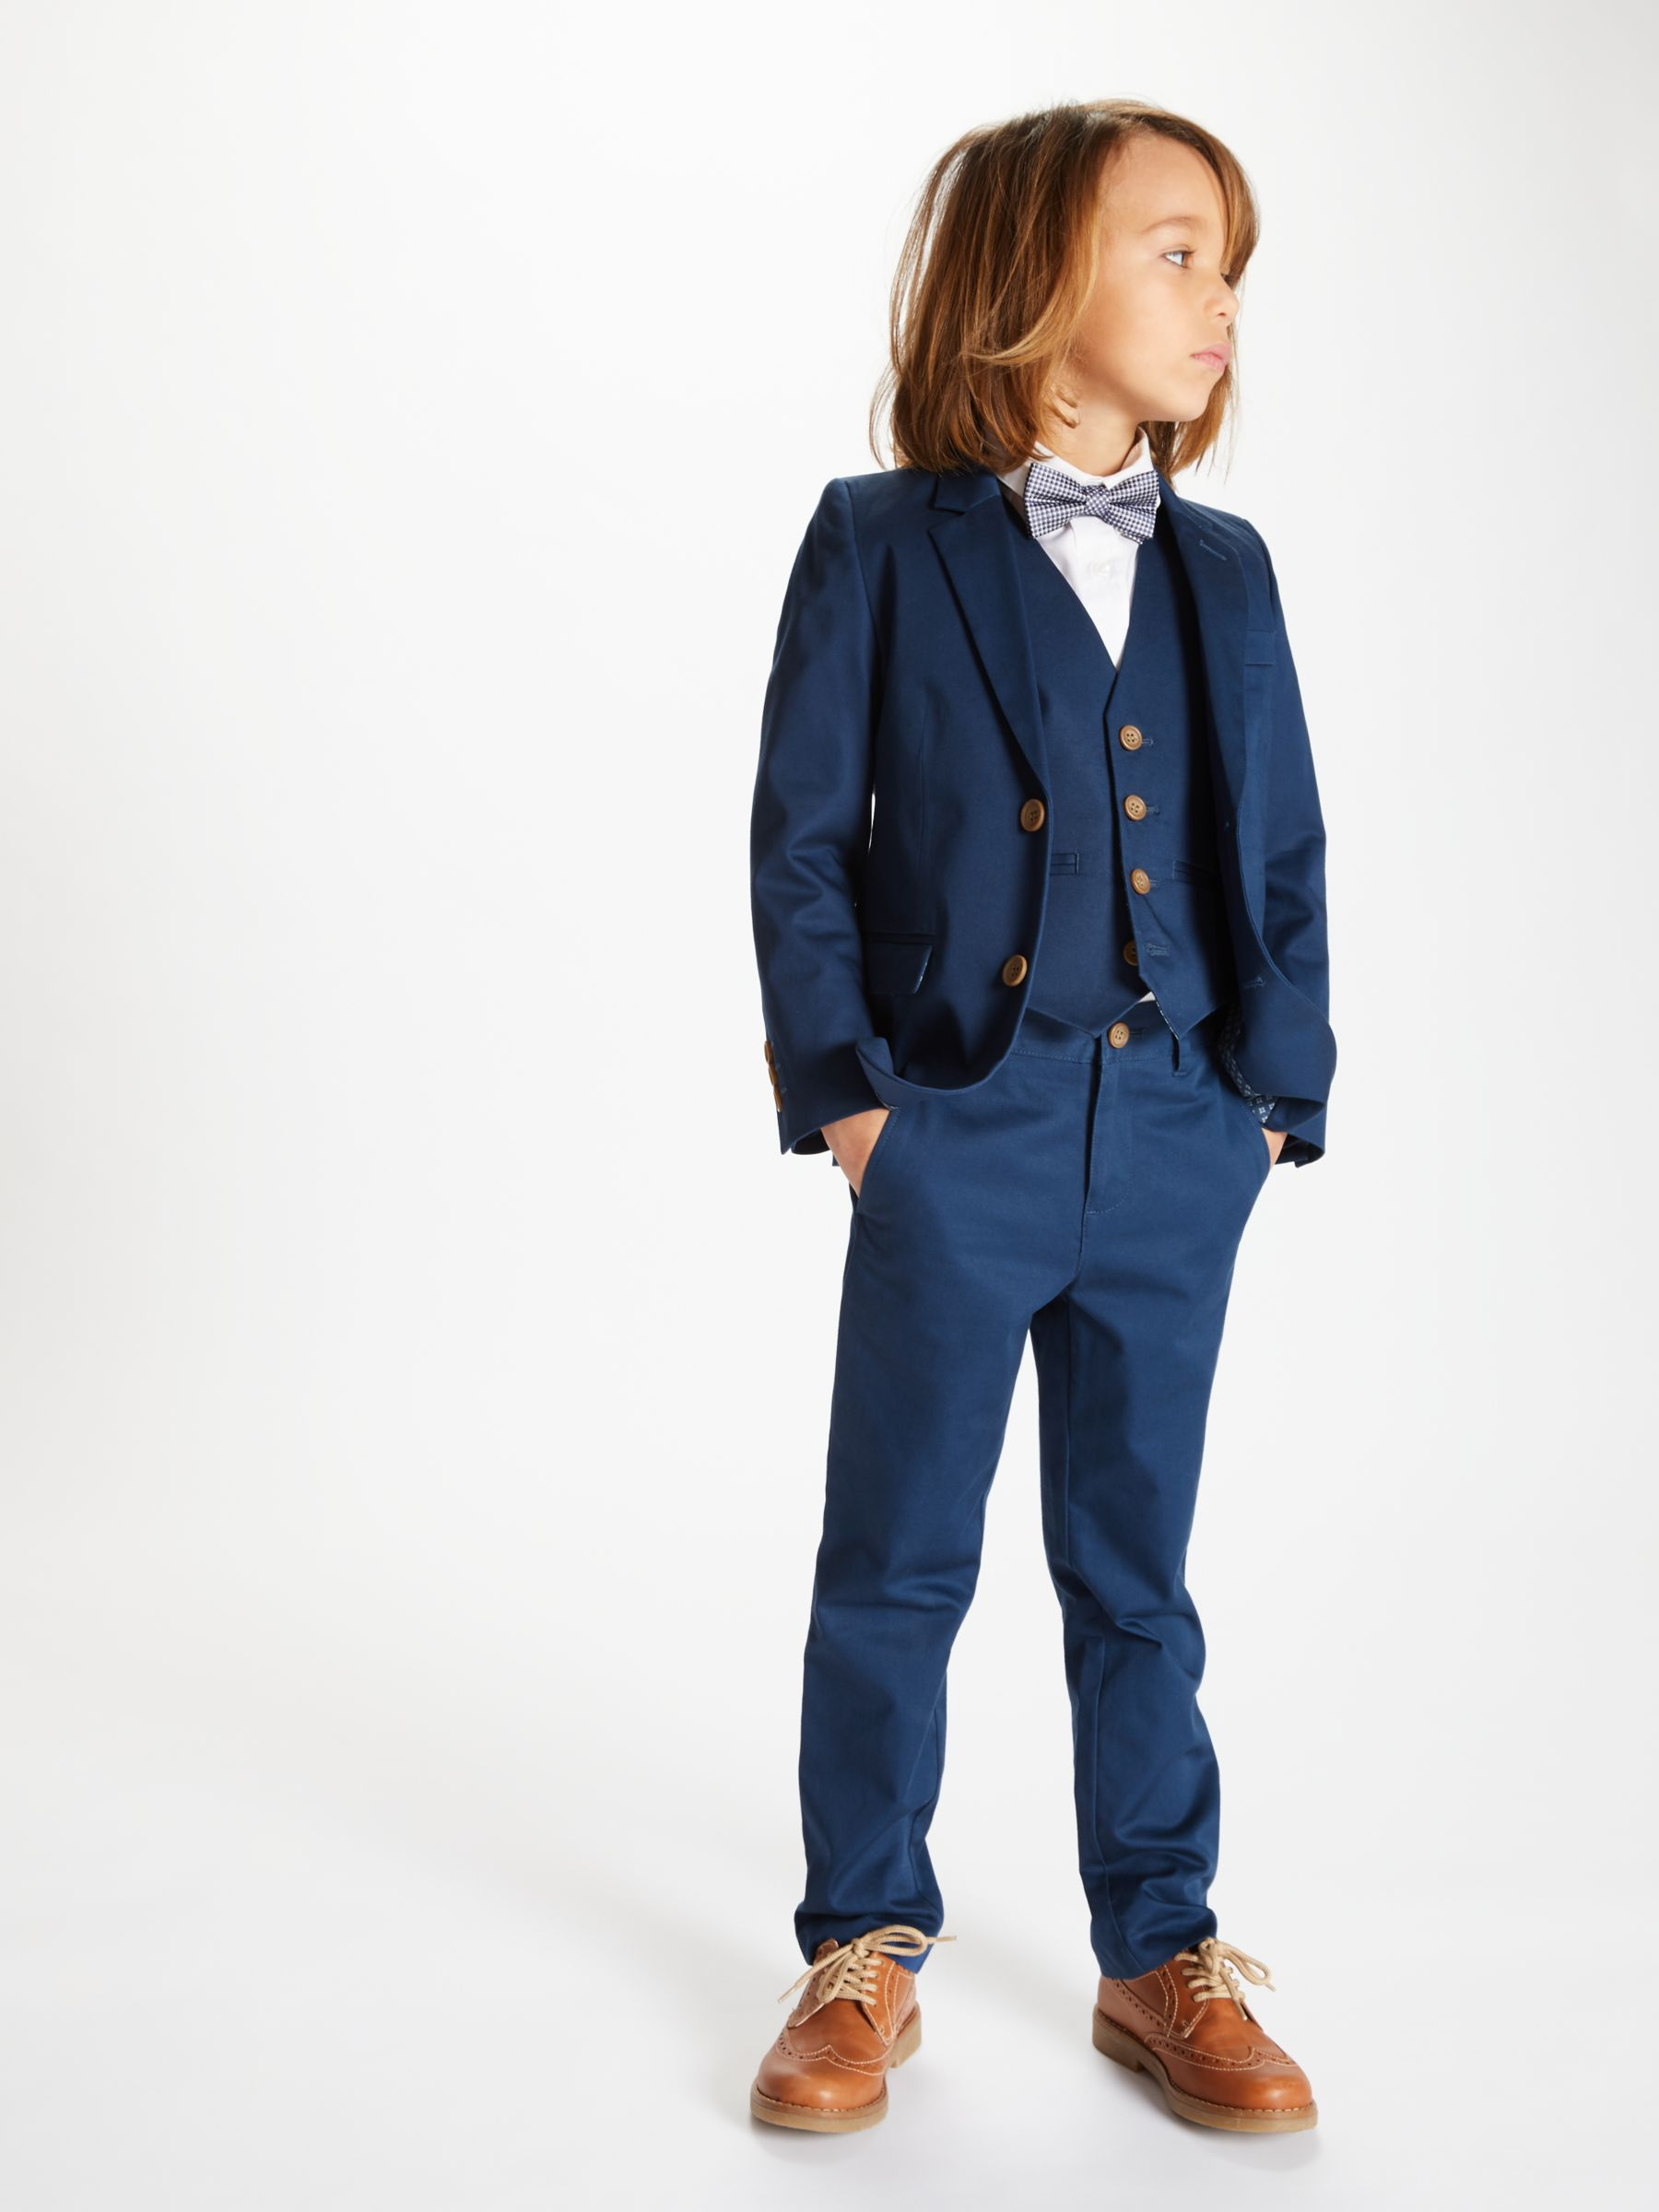 John Lewis Heirloom Collection Boys Cotton Sateen Suit Trousers Blue Aged 8 9 Boys Formal Occasion